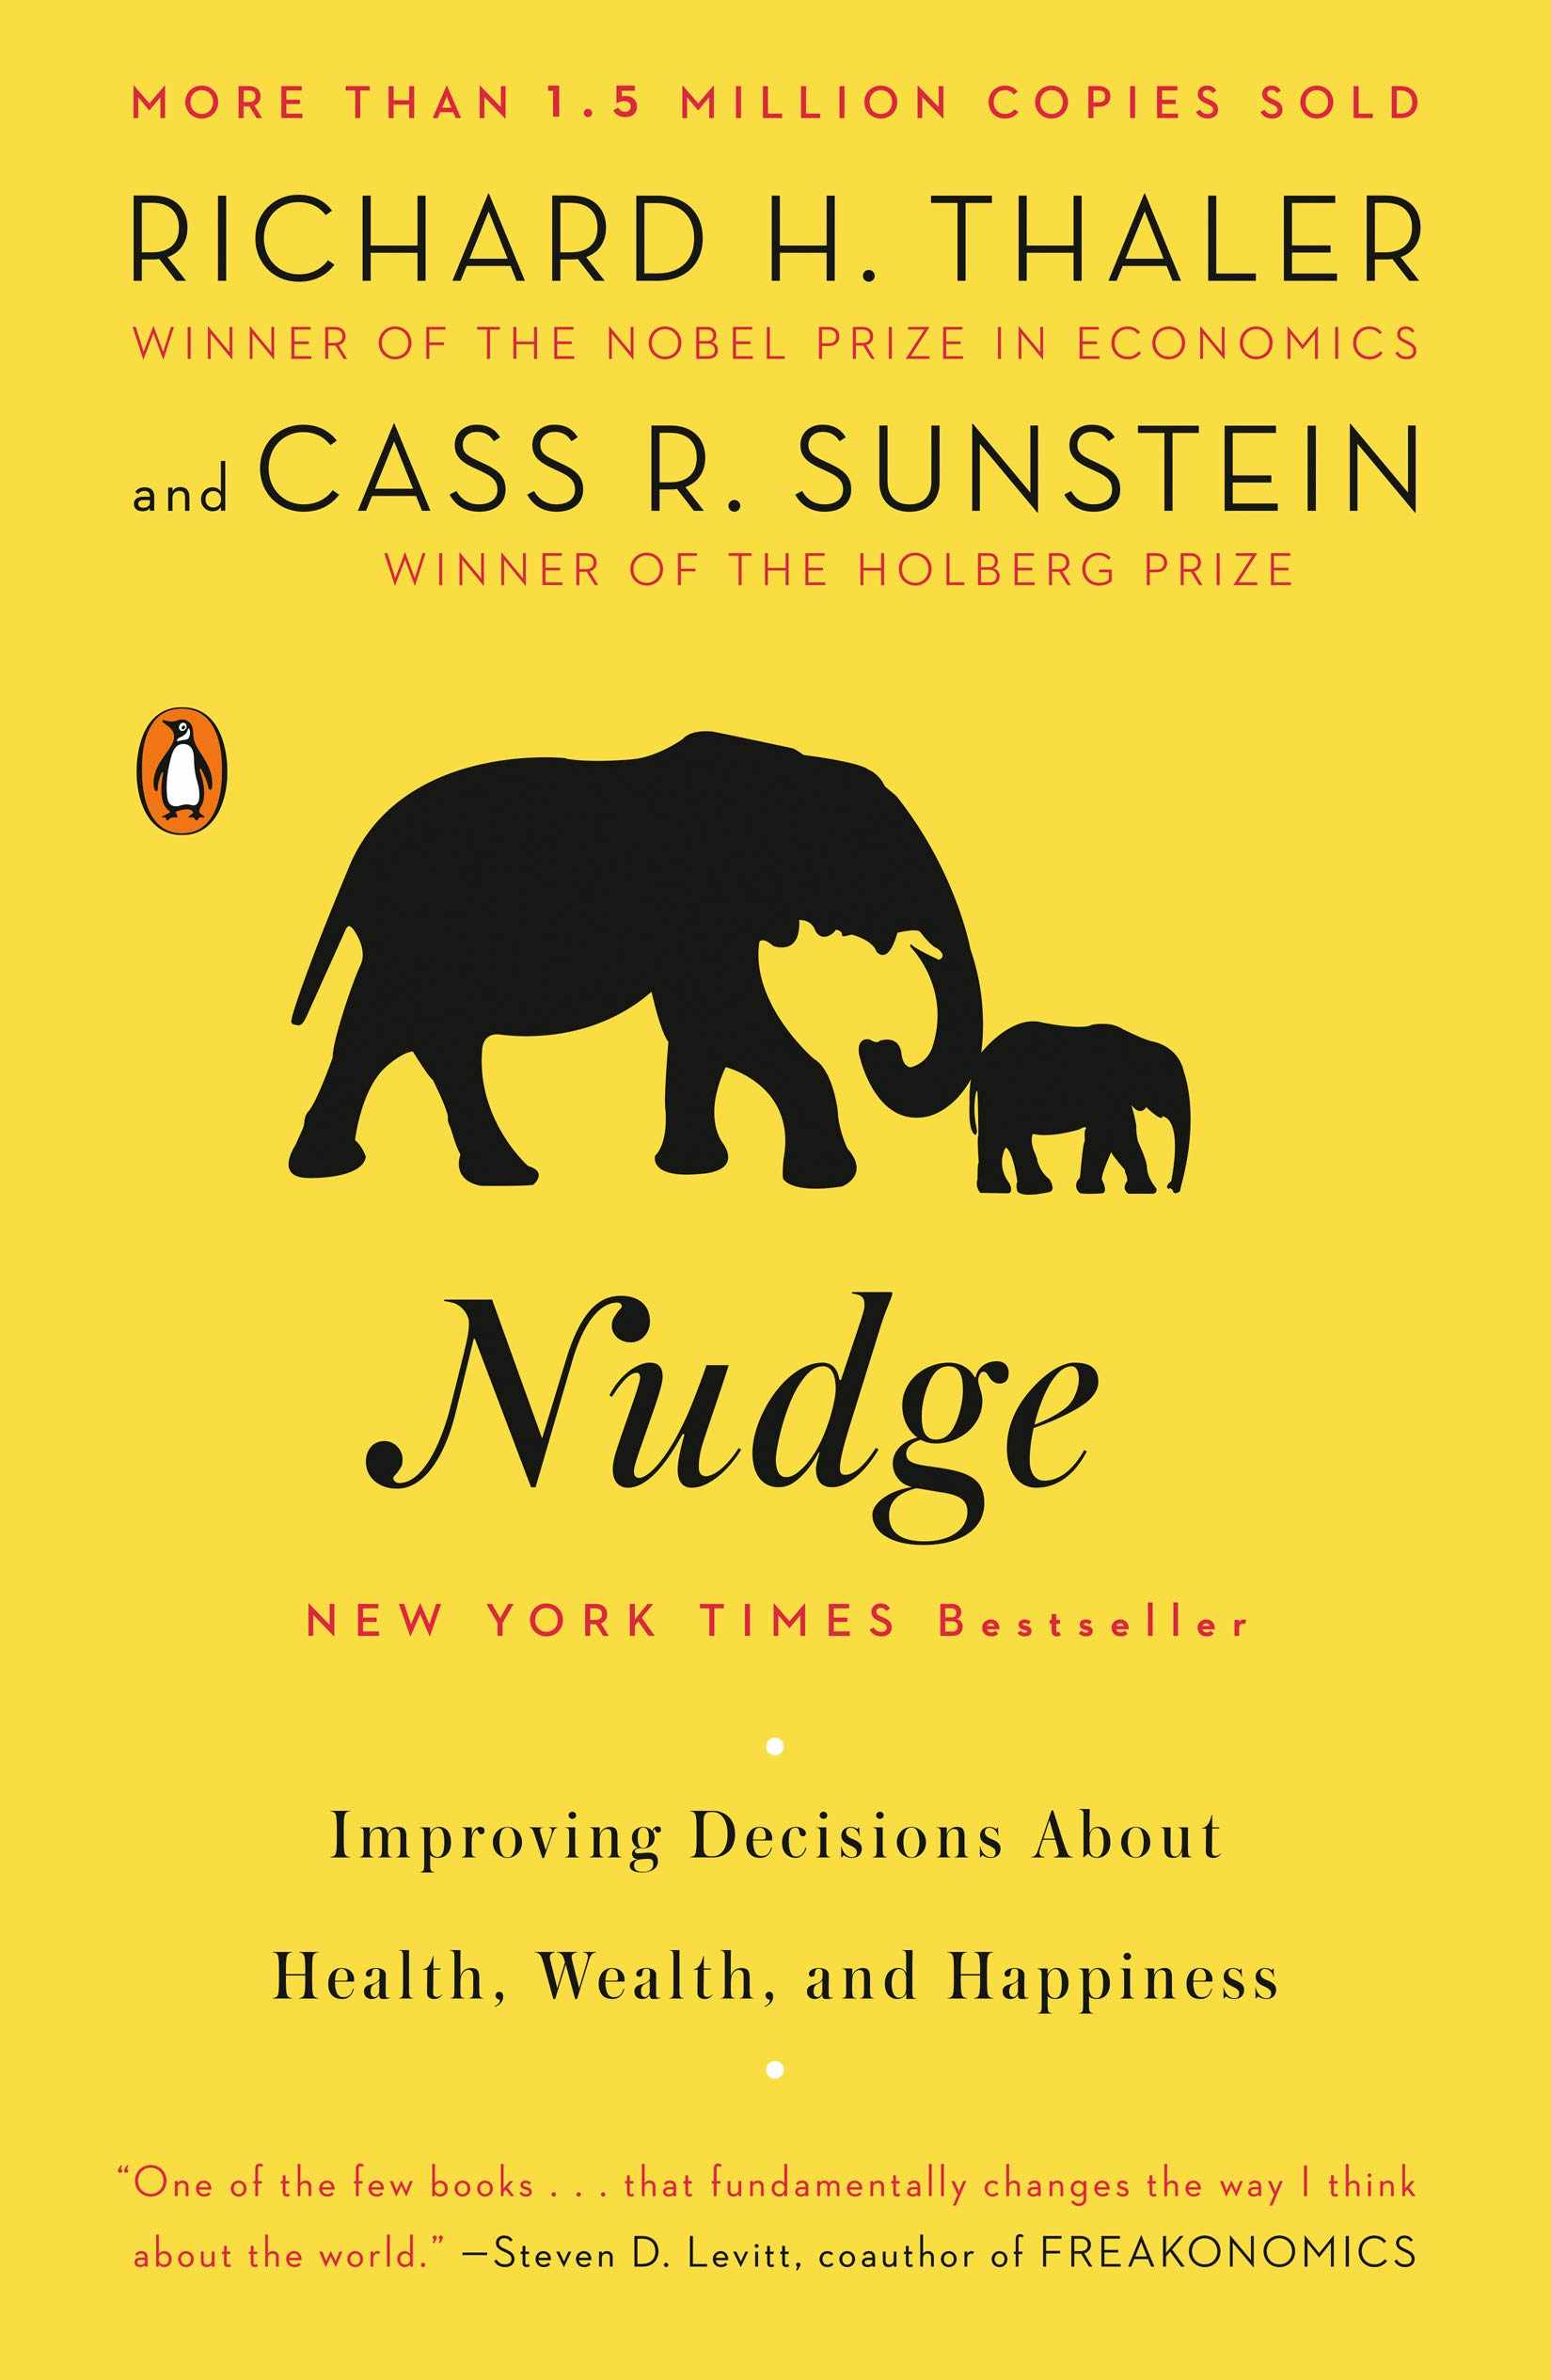 Nudge: Improving Decisions About Health, Wealth, and Happiness: Thaler,  Richard H., Sunstein, Cass R.: 8580001056876: Amazon.com: Books